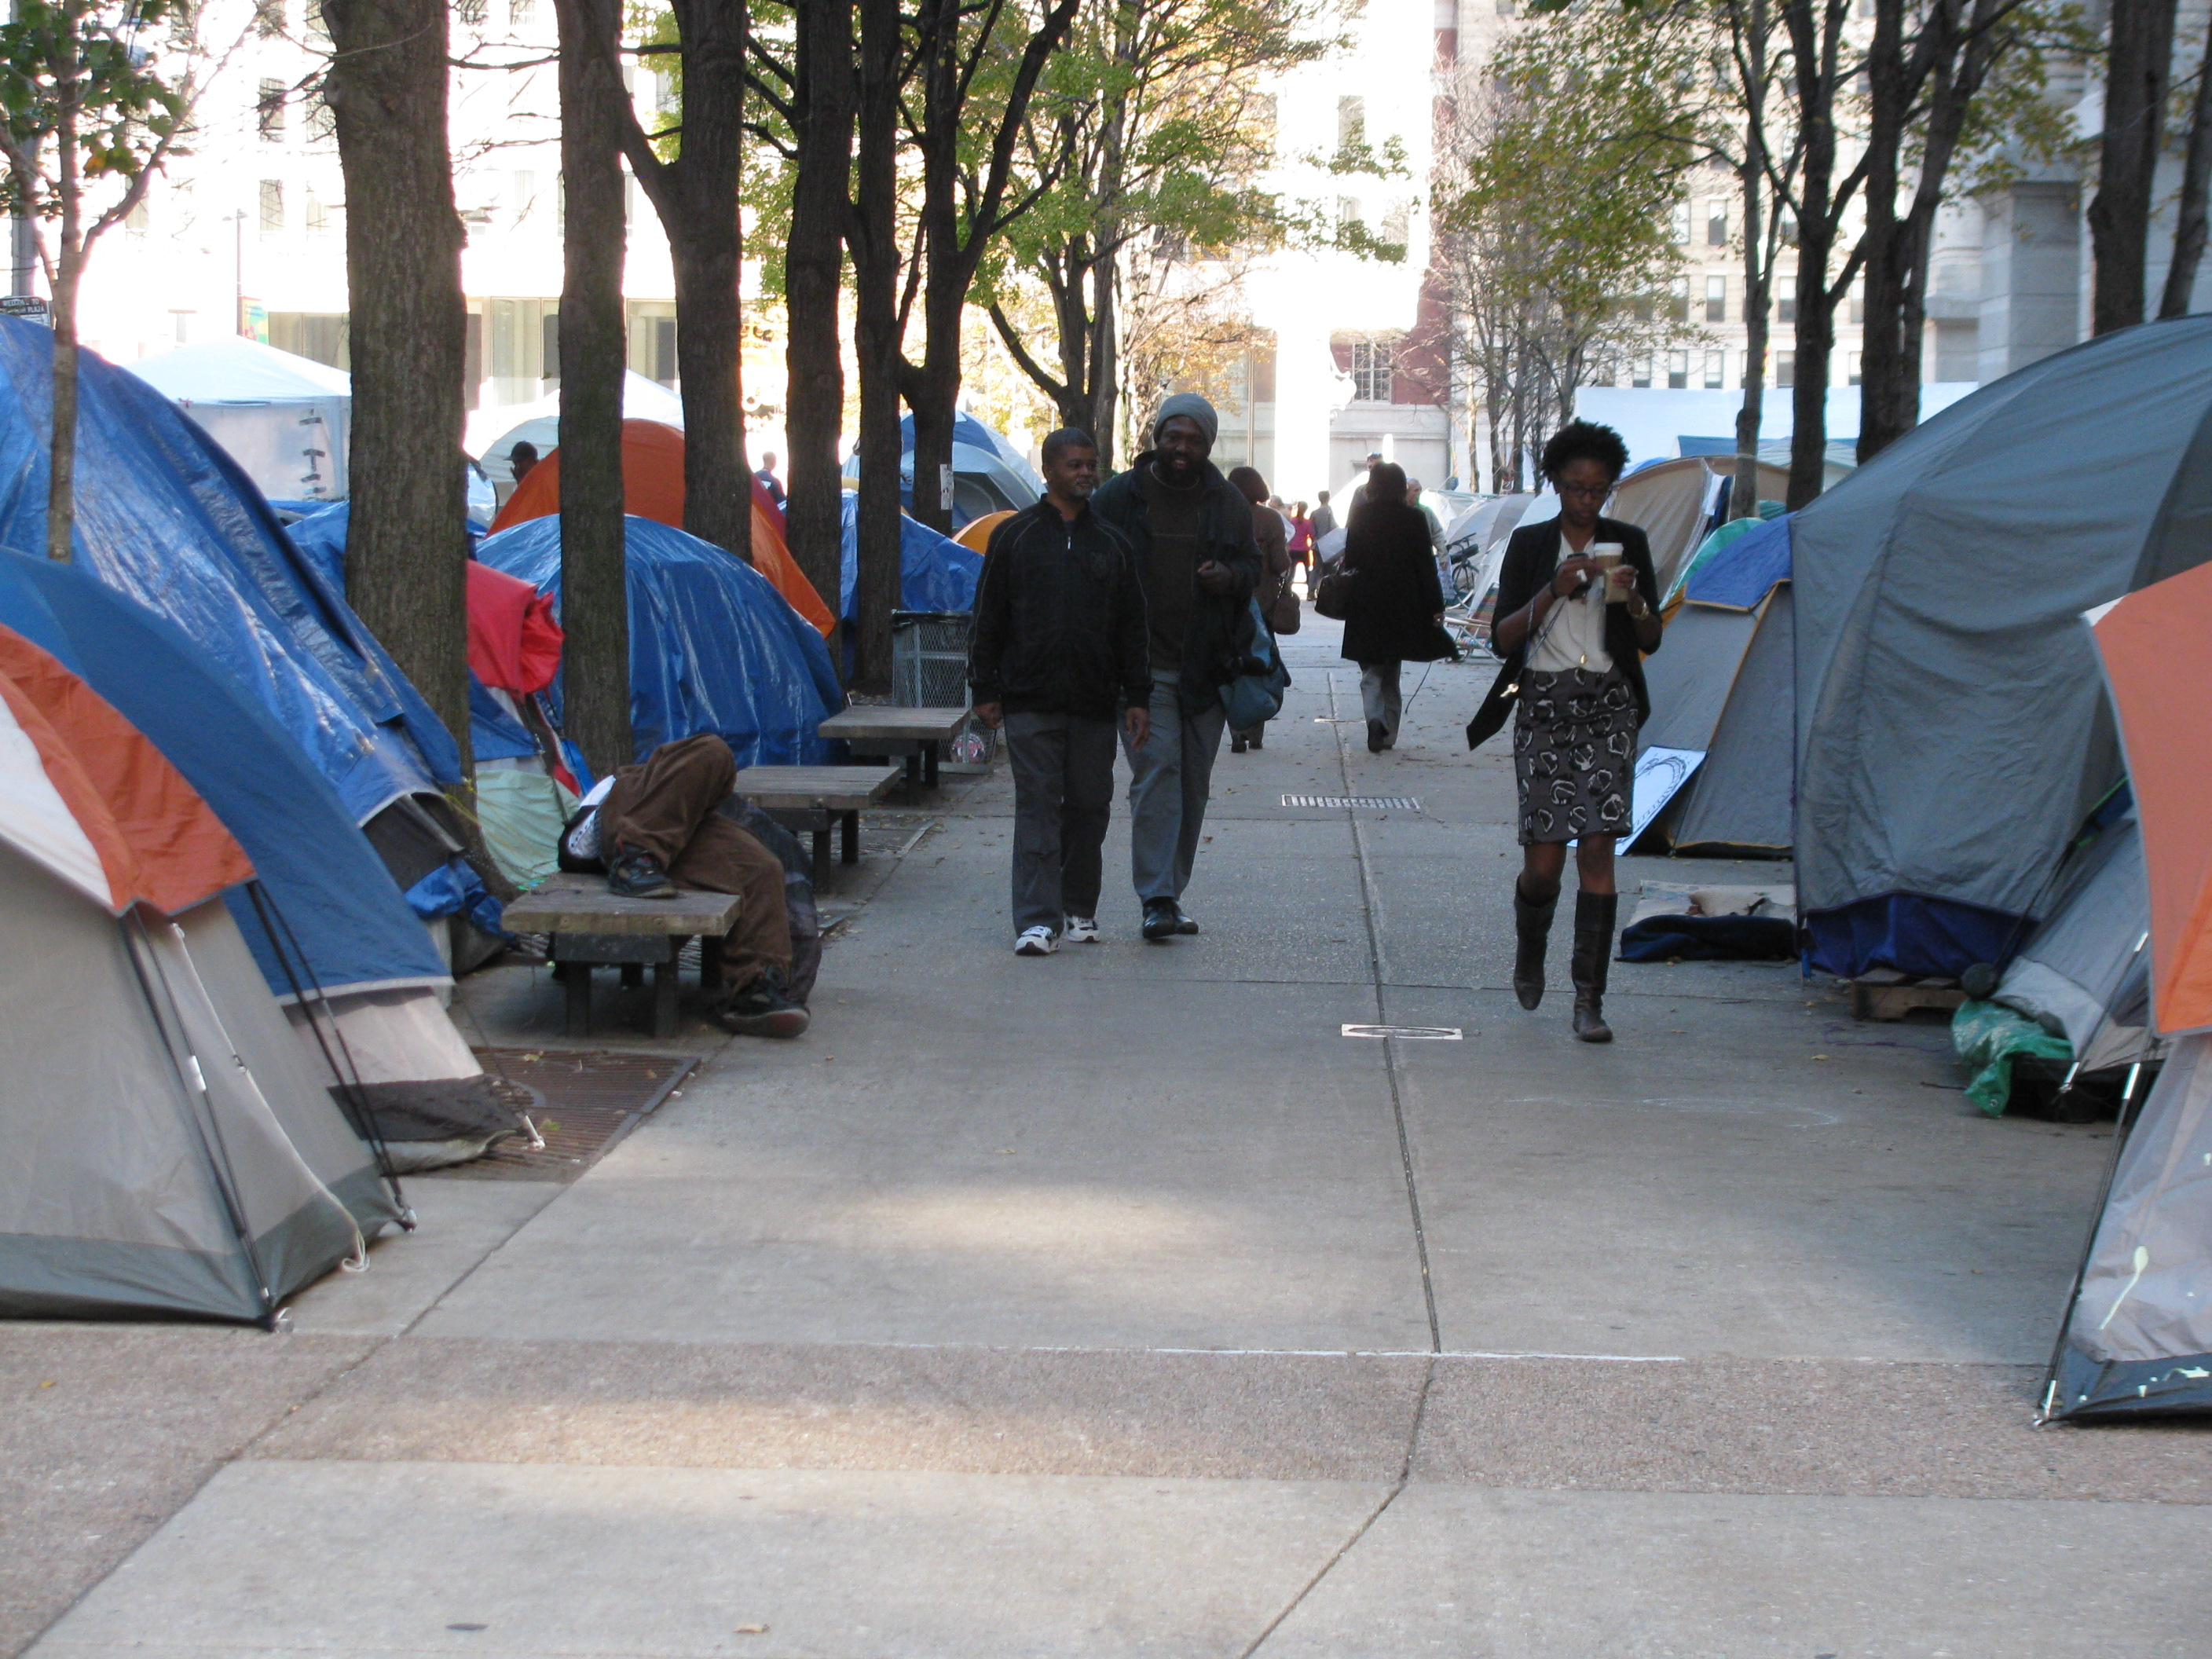 Occupy Philly's Spontaneous Urbanism